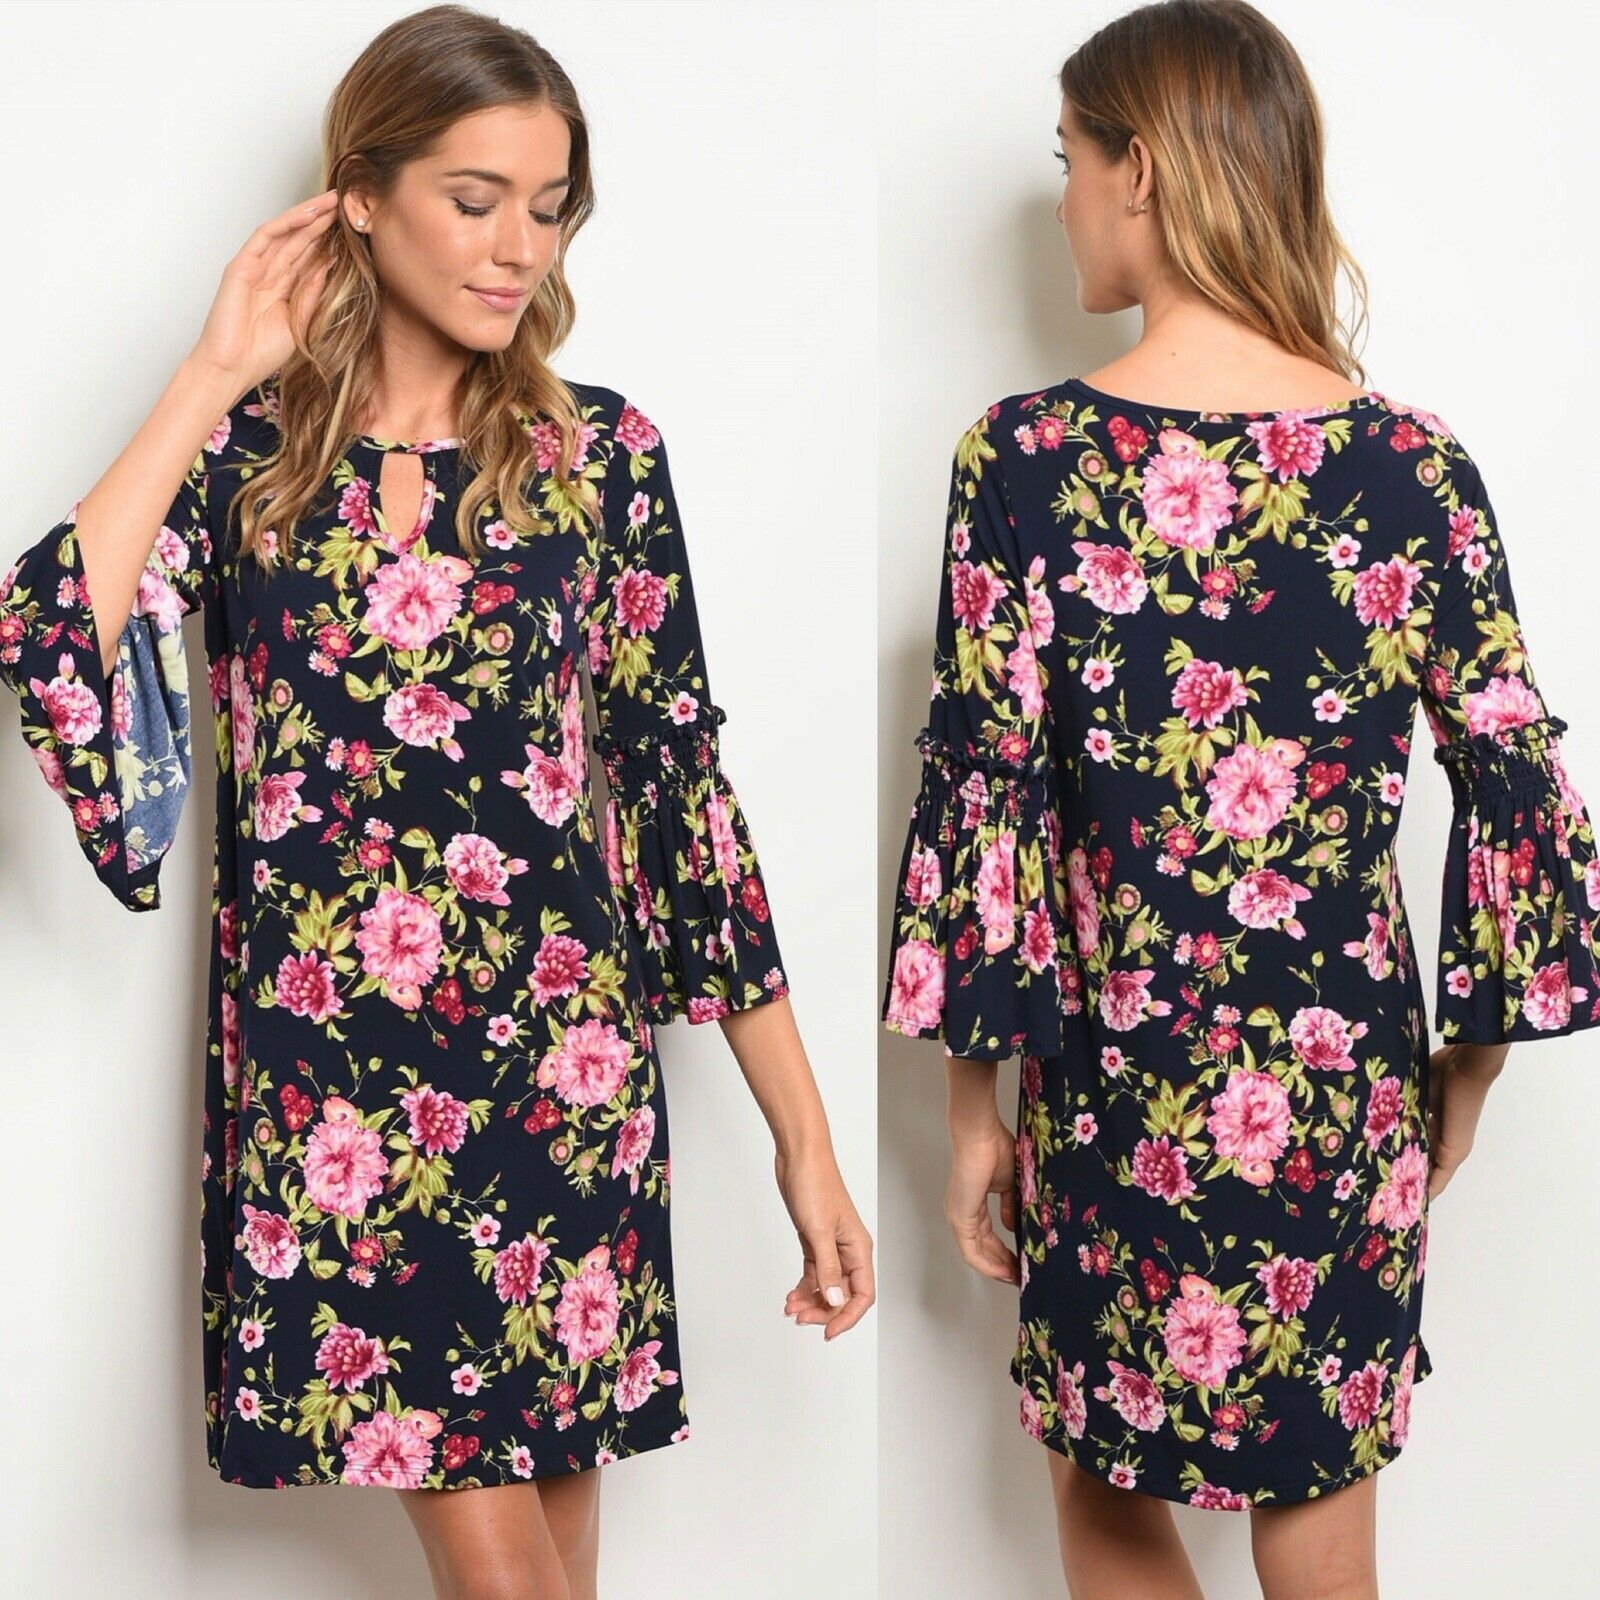 Last 1  NWT Small Women's Floral Dress Easter Dress Spring Dress Boutique